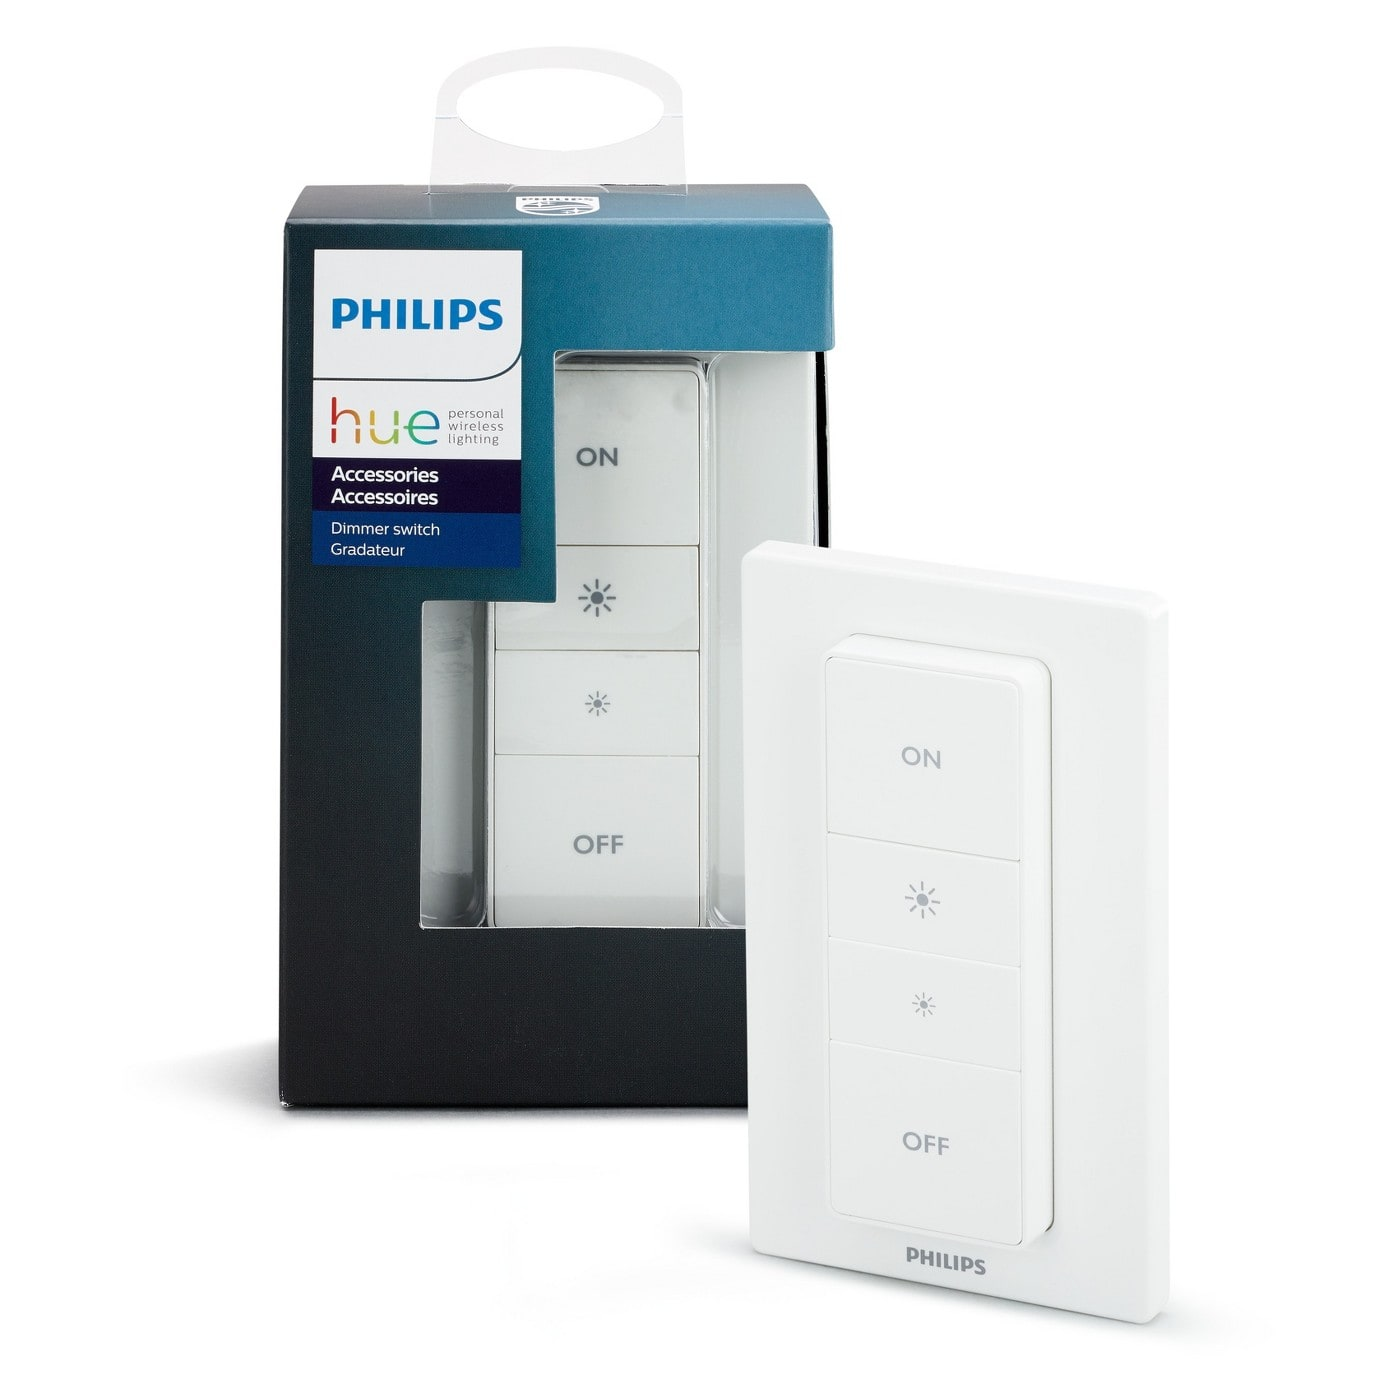 Philips Hue Wireless Dimming Kit $19.99 at Target FS over $35